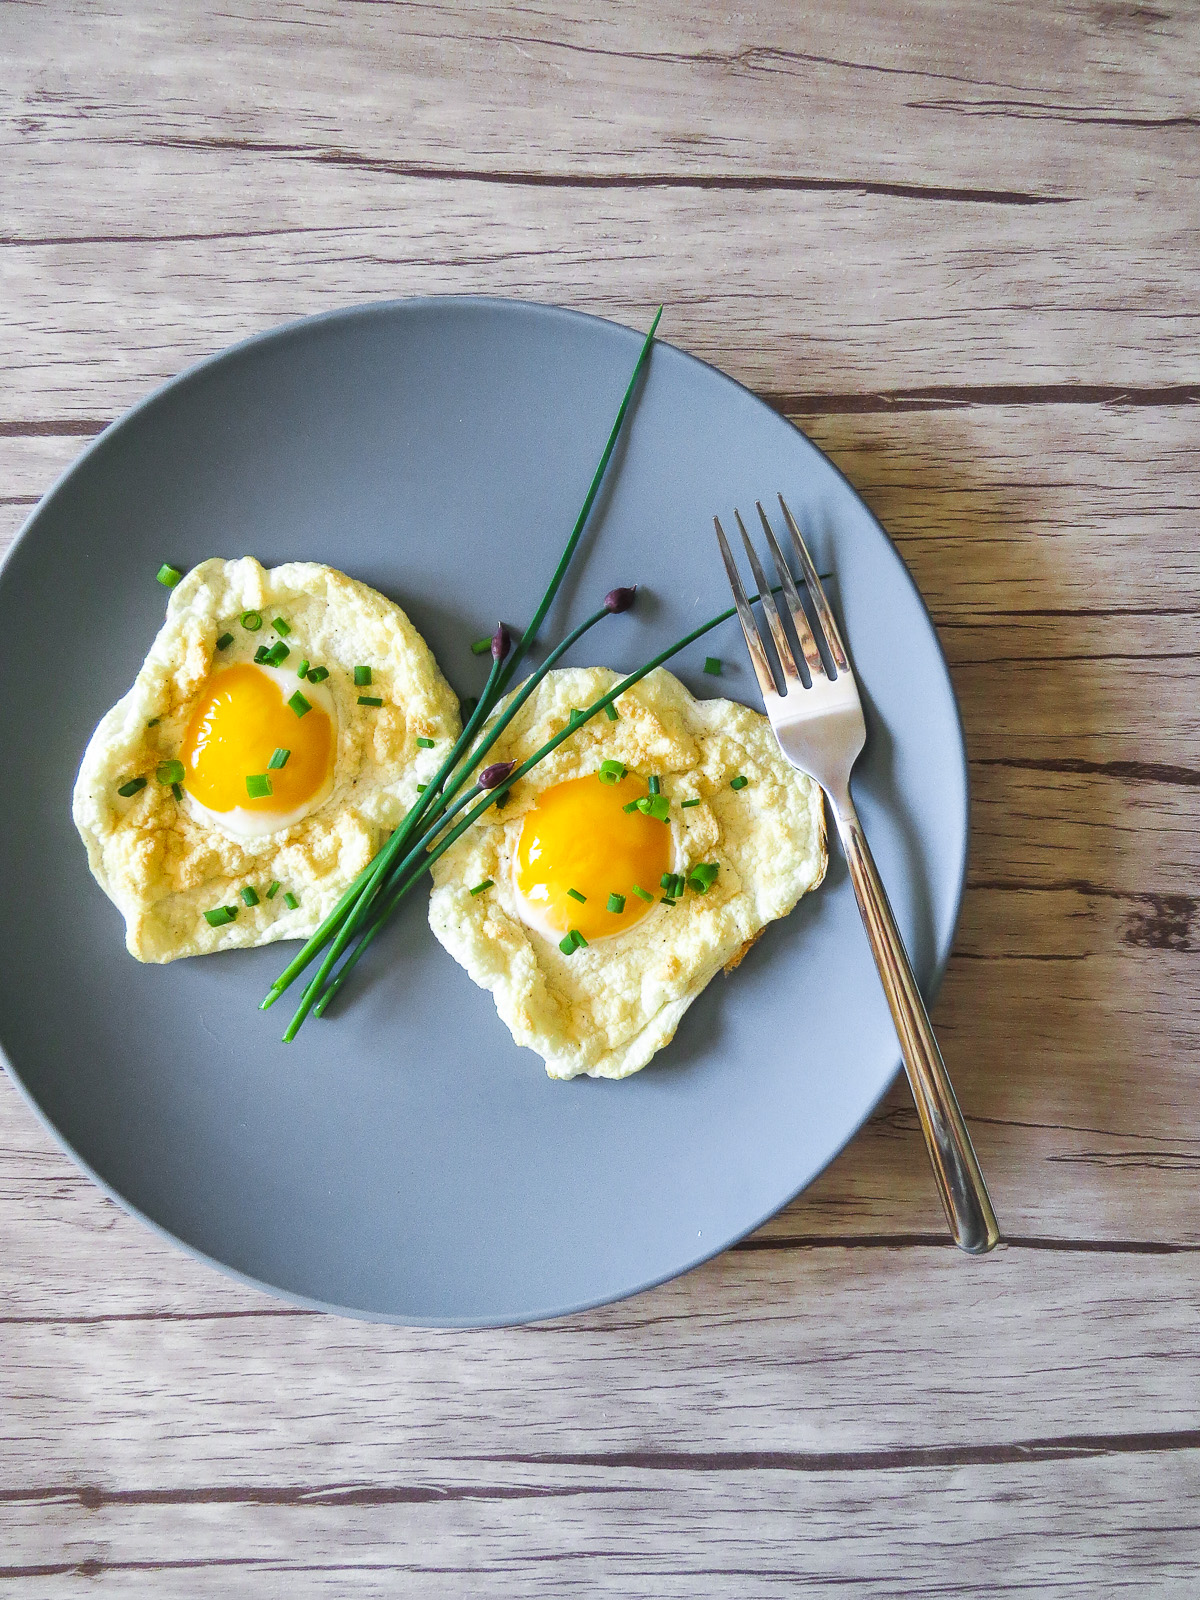 Cloud Eggs - The latest breakfast egg trend! Cloud eggs or eggs in clouds are super customizable and so easy to make! Perfect for brunch for one, a couple or many!